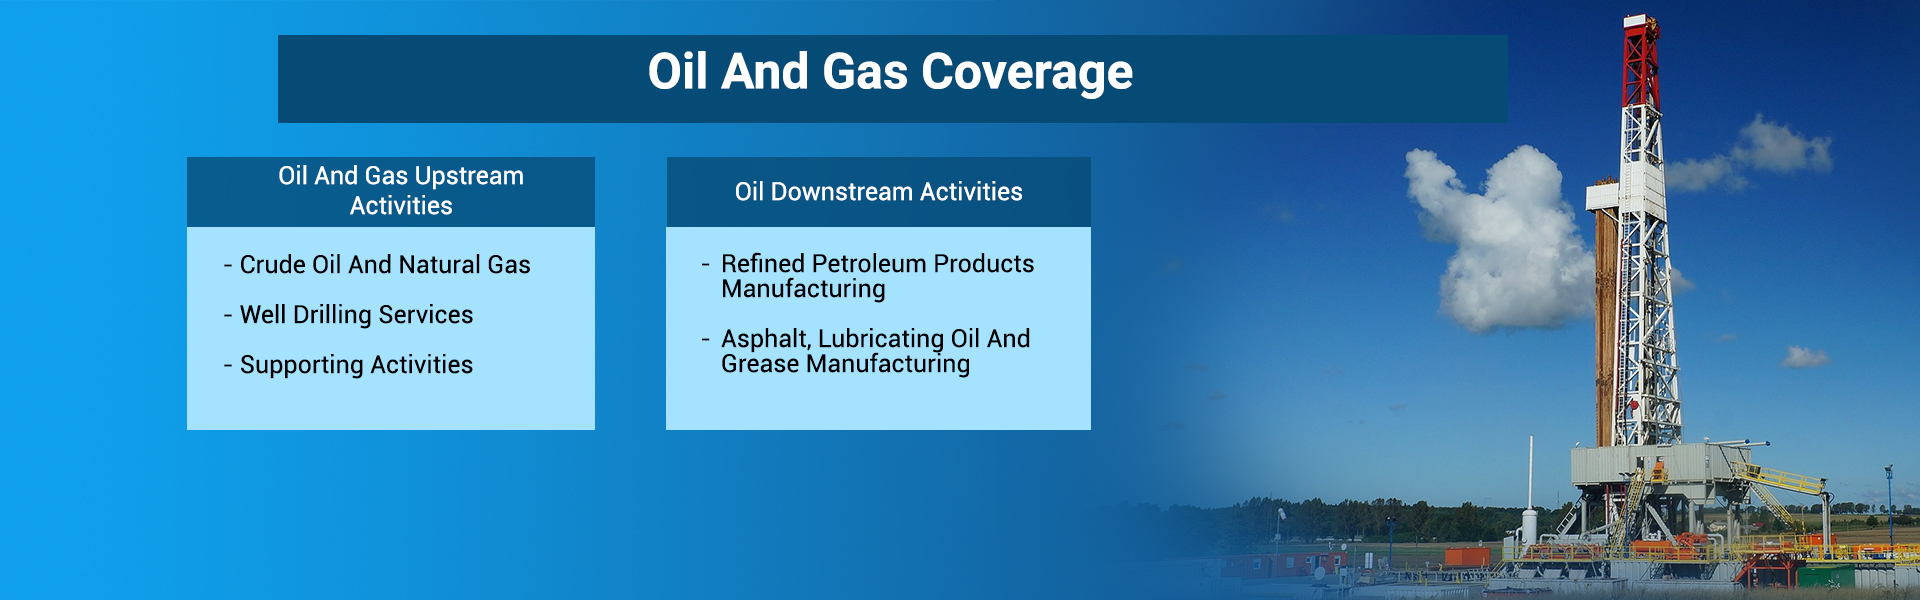 Oil and Gas Coverage